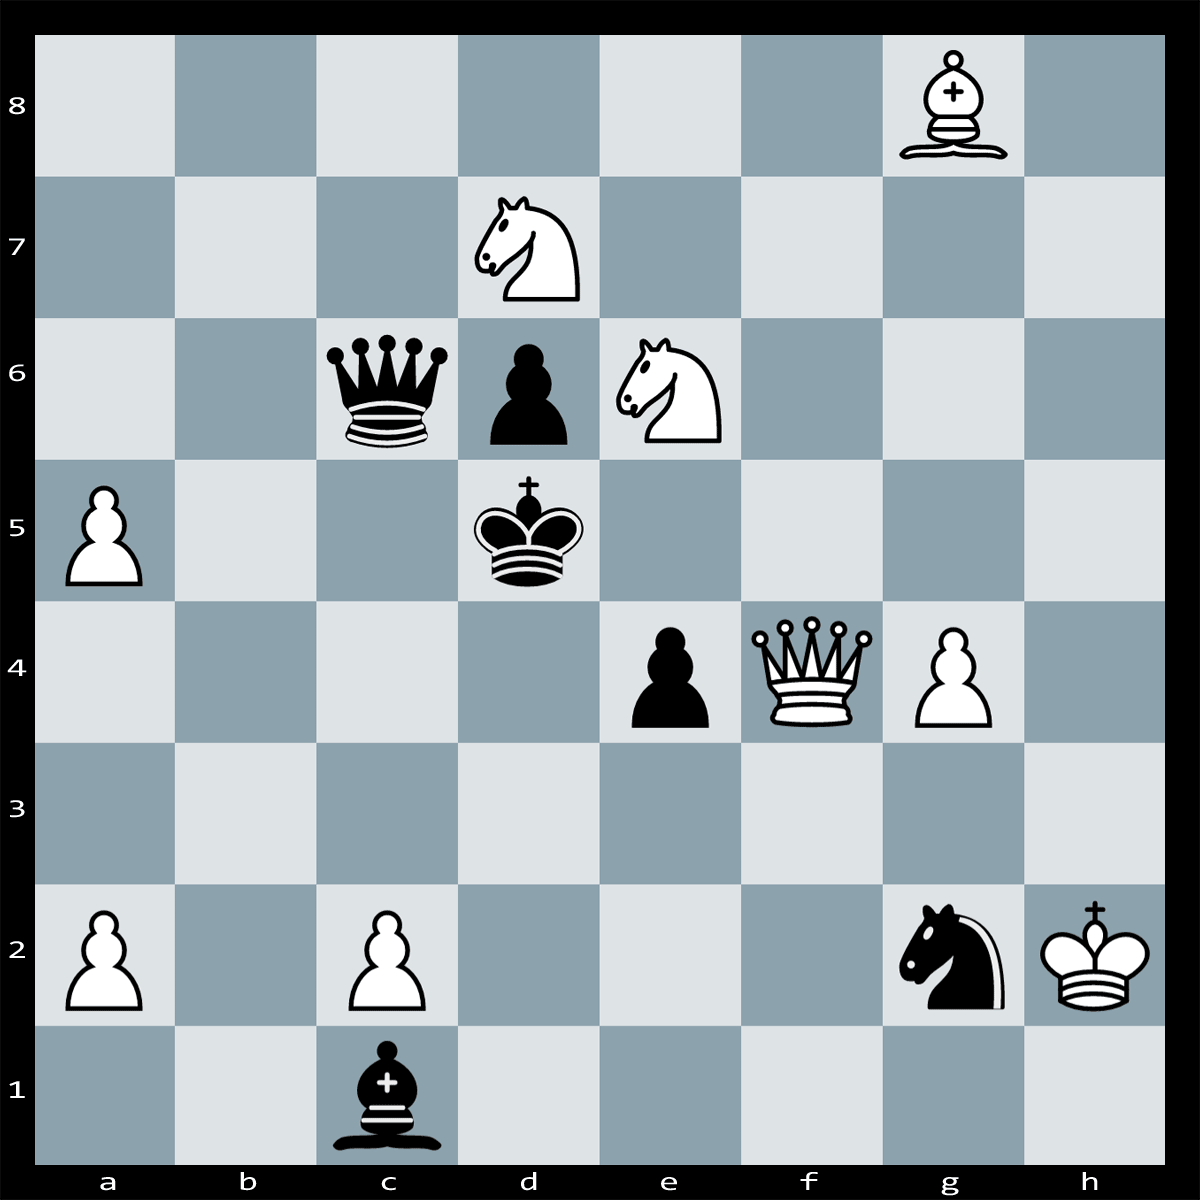 Mate in Three moves, White to Play | Chess Puzzle #132